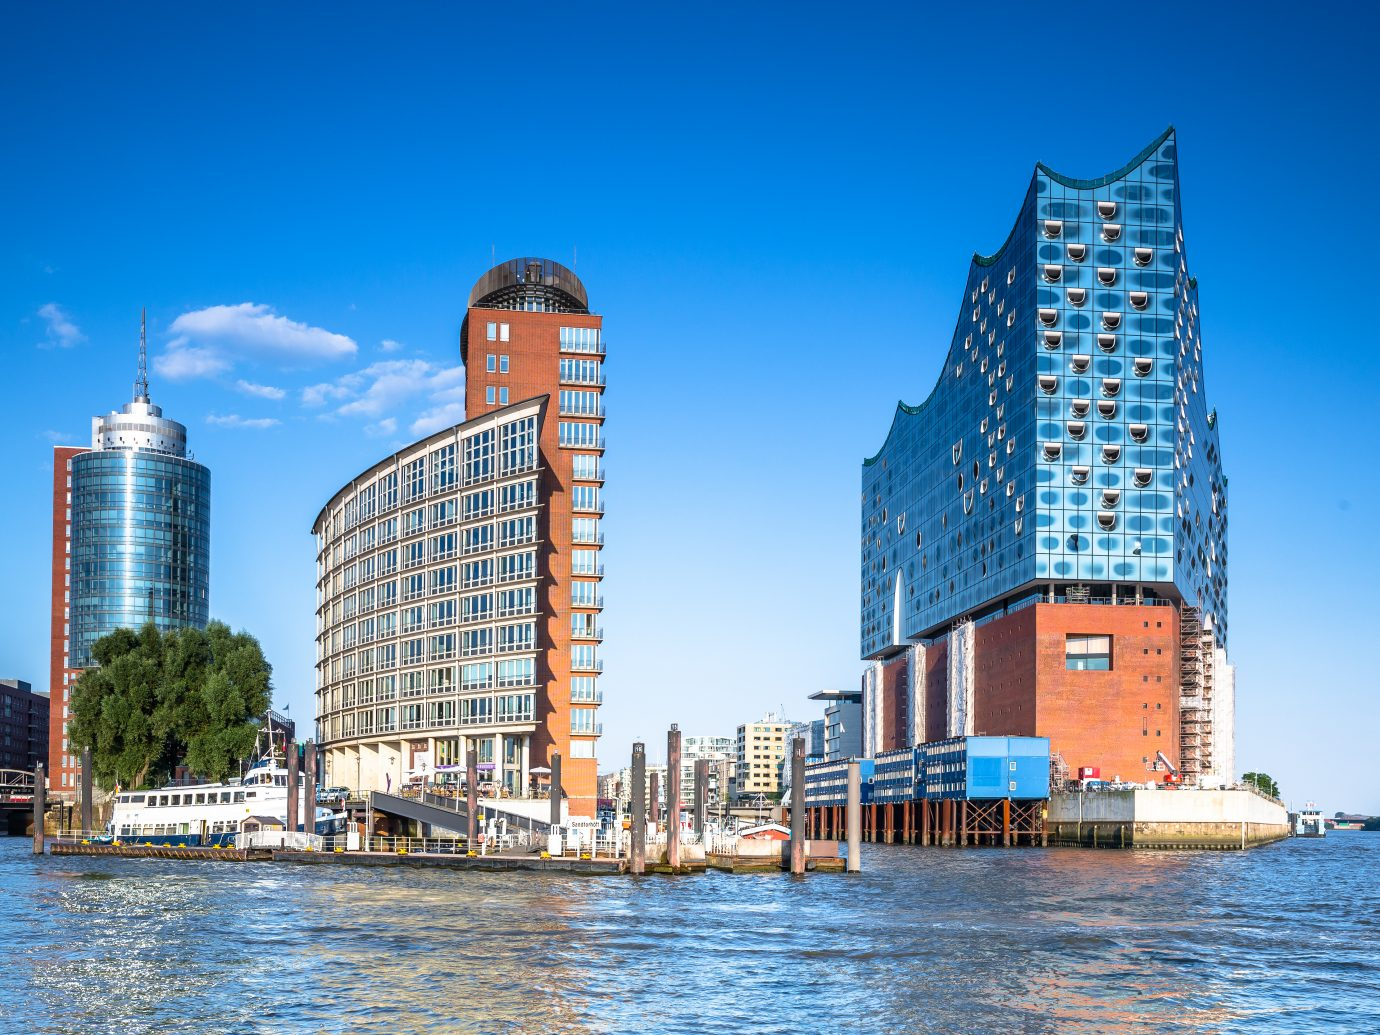 Front view of the new Elbphilharmonie